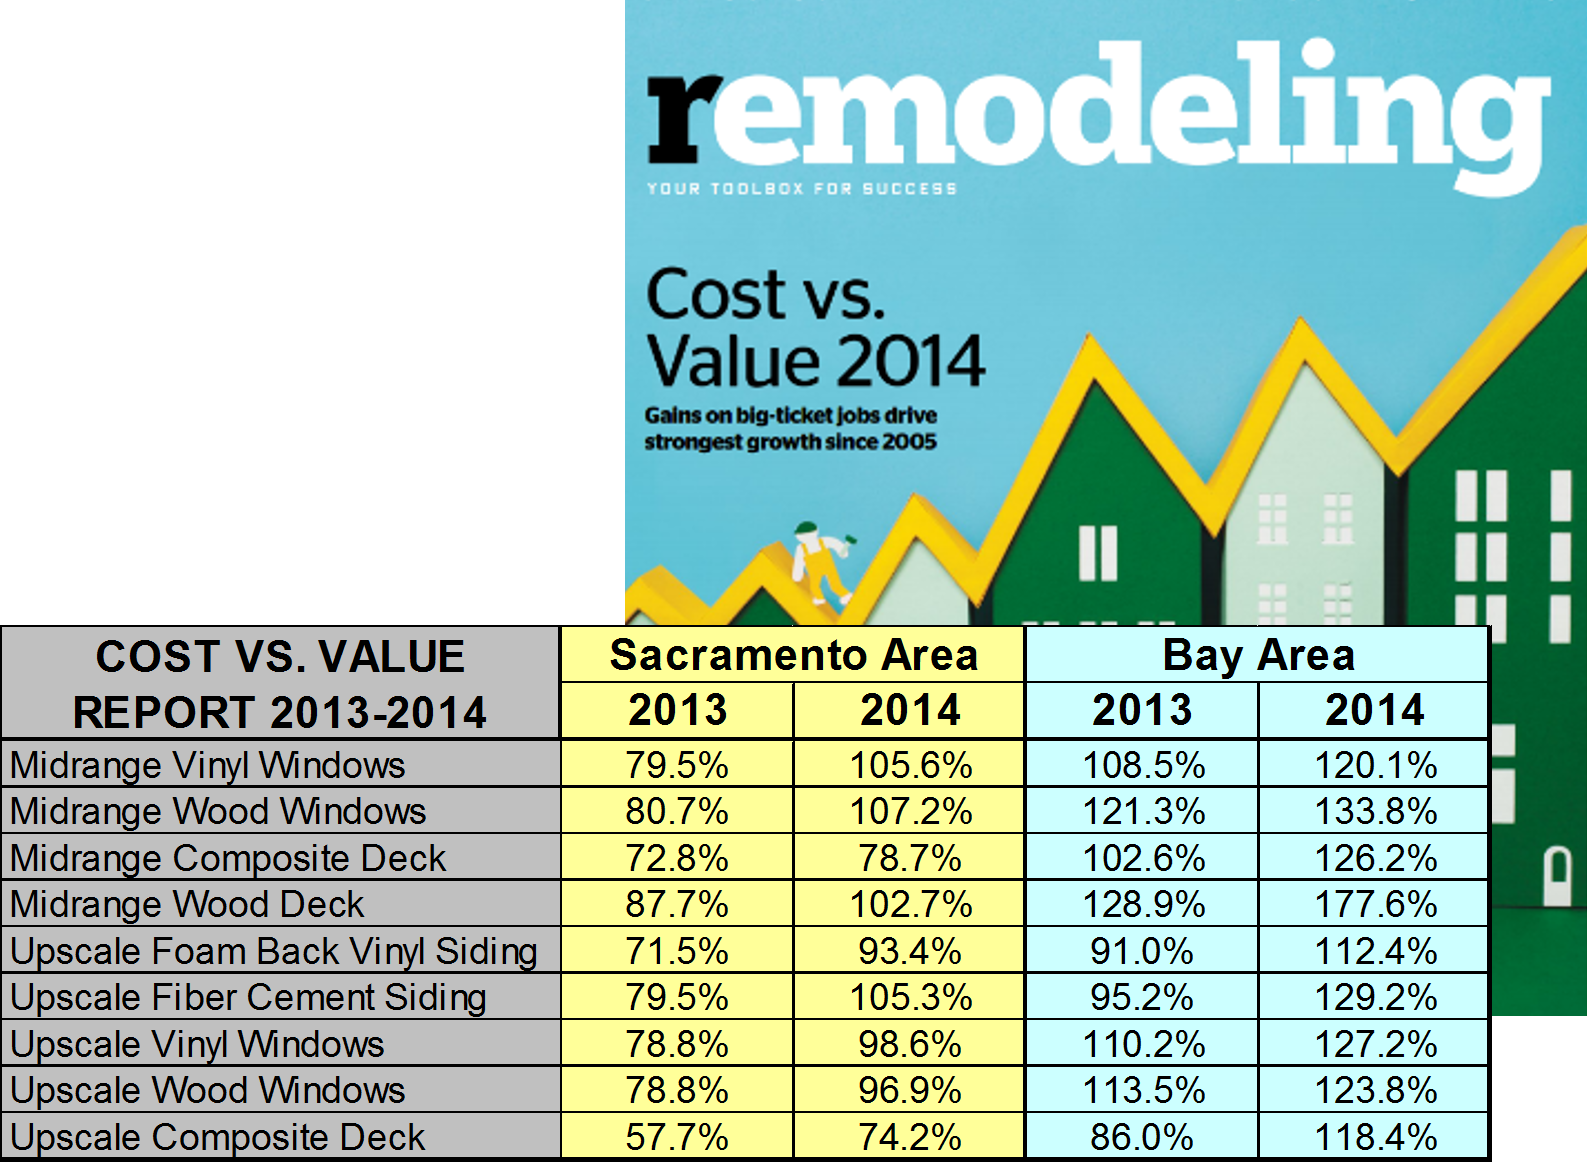 and graphs – http://www.remodeling.hw.net/cost-vs-value/2014/trends